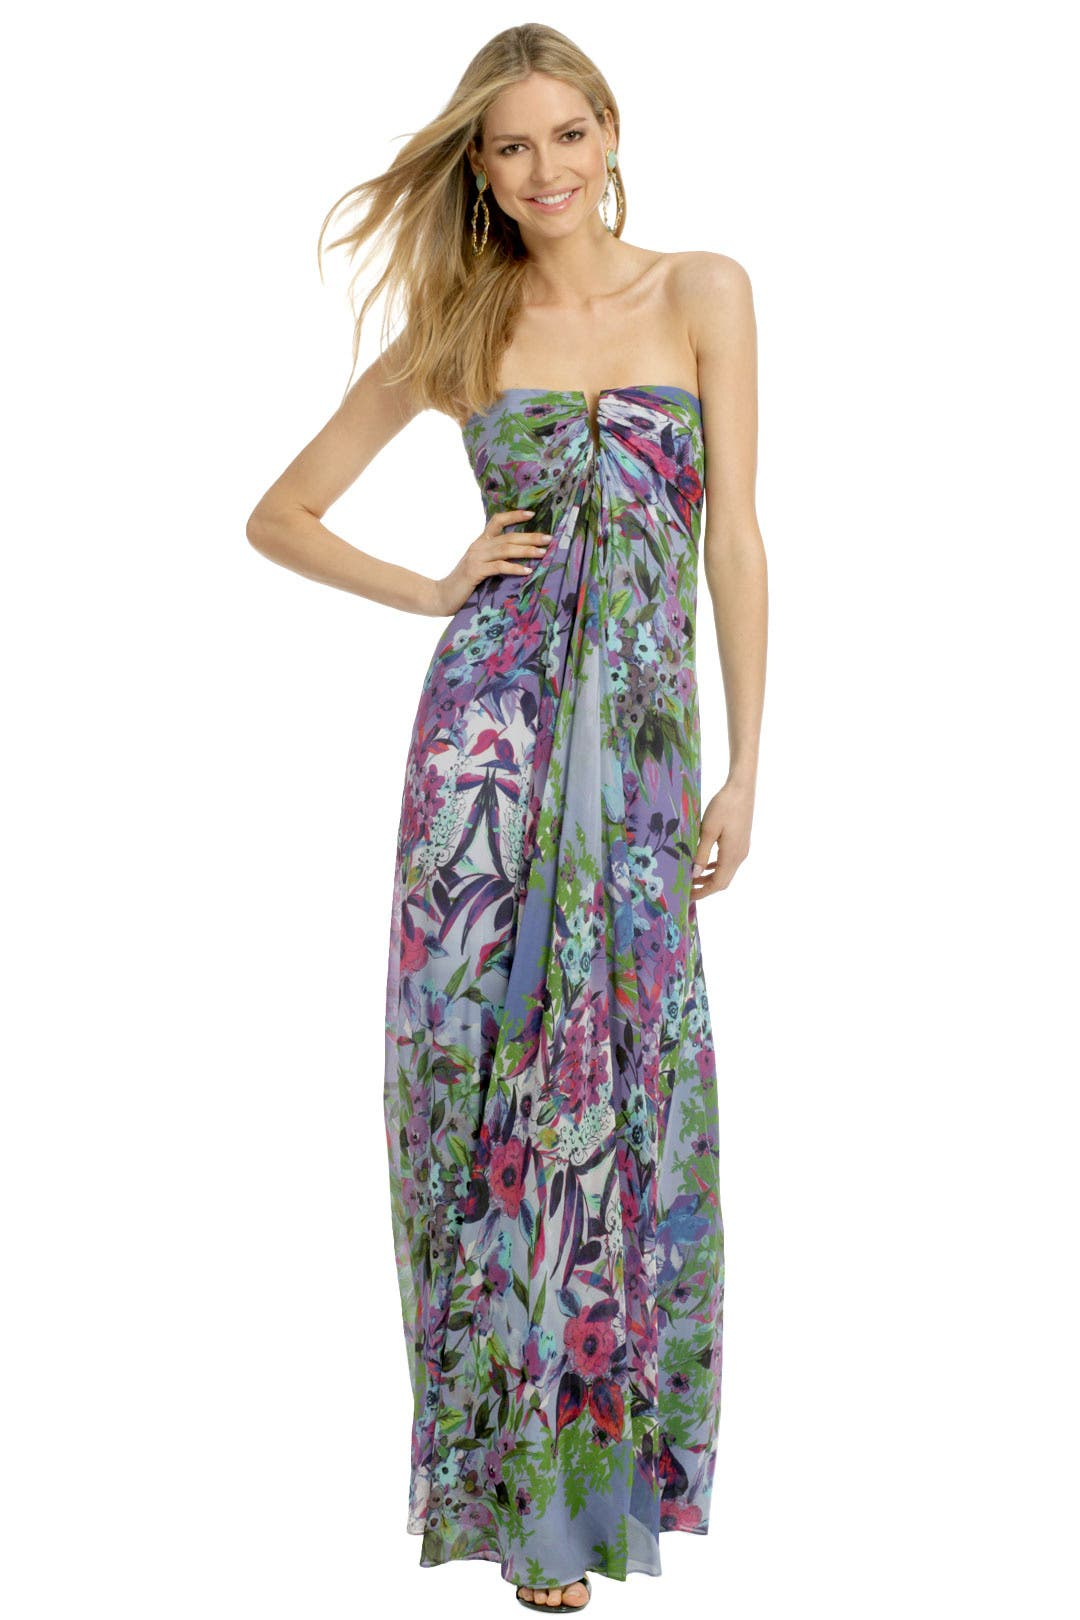 Angelina Wildflower Maxi by Nicole Miller for $100 | Rent the Runway